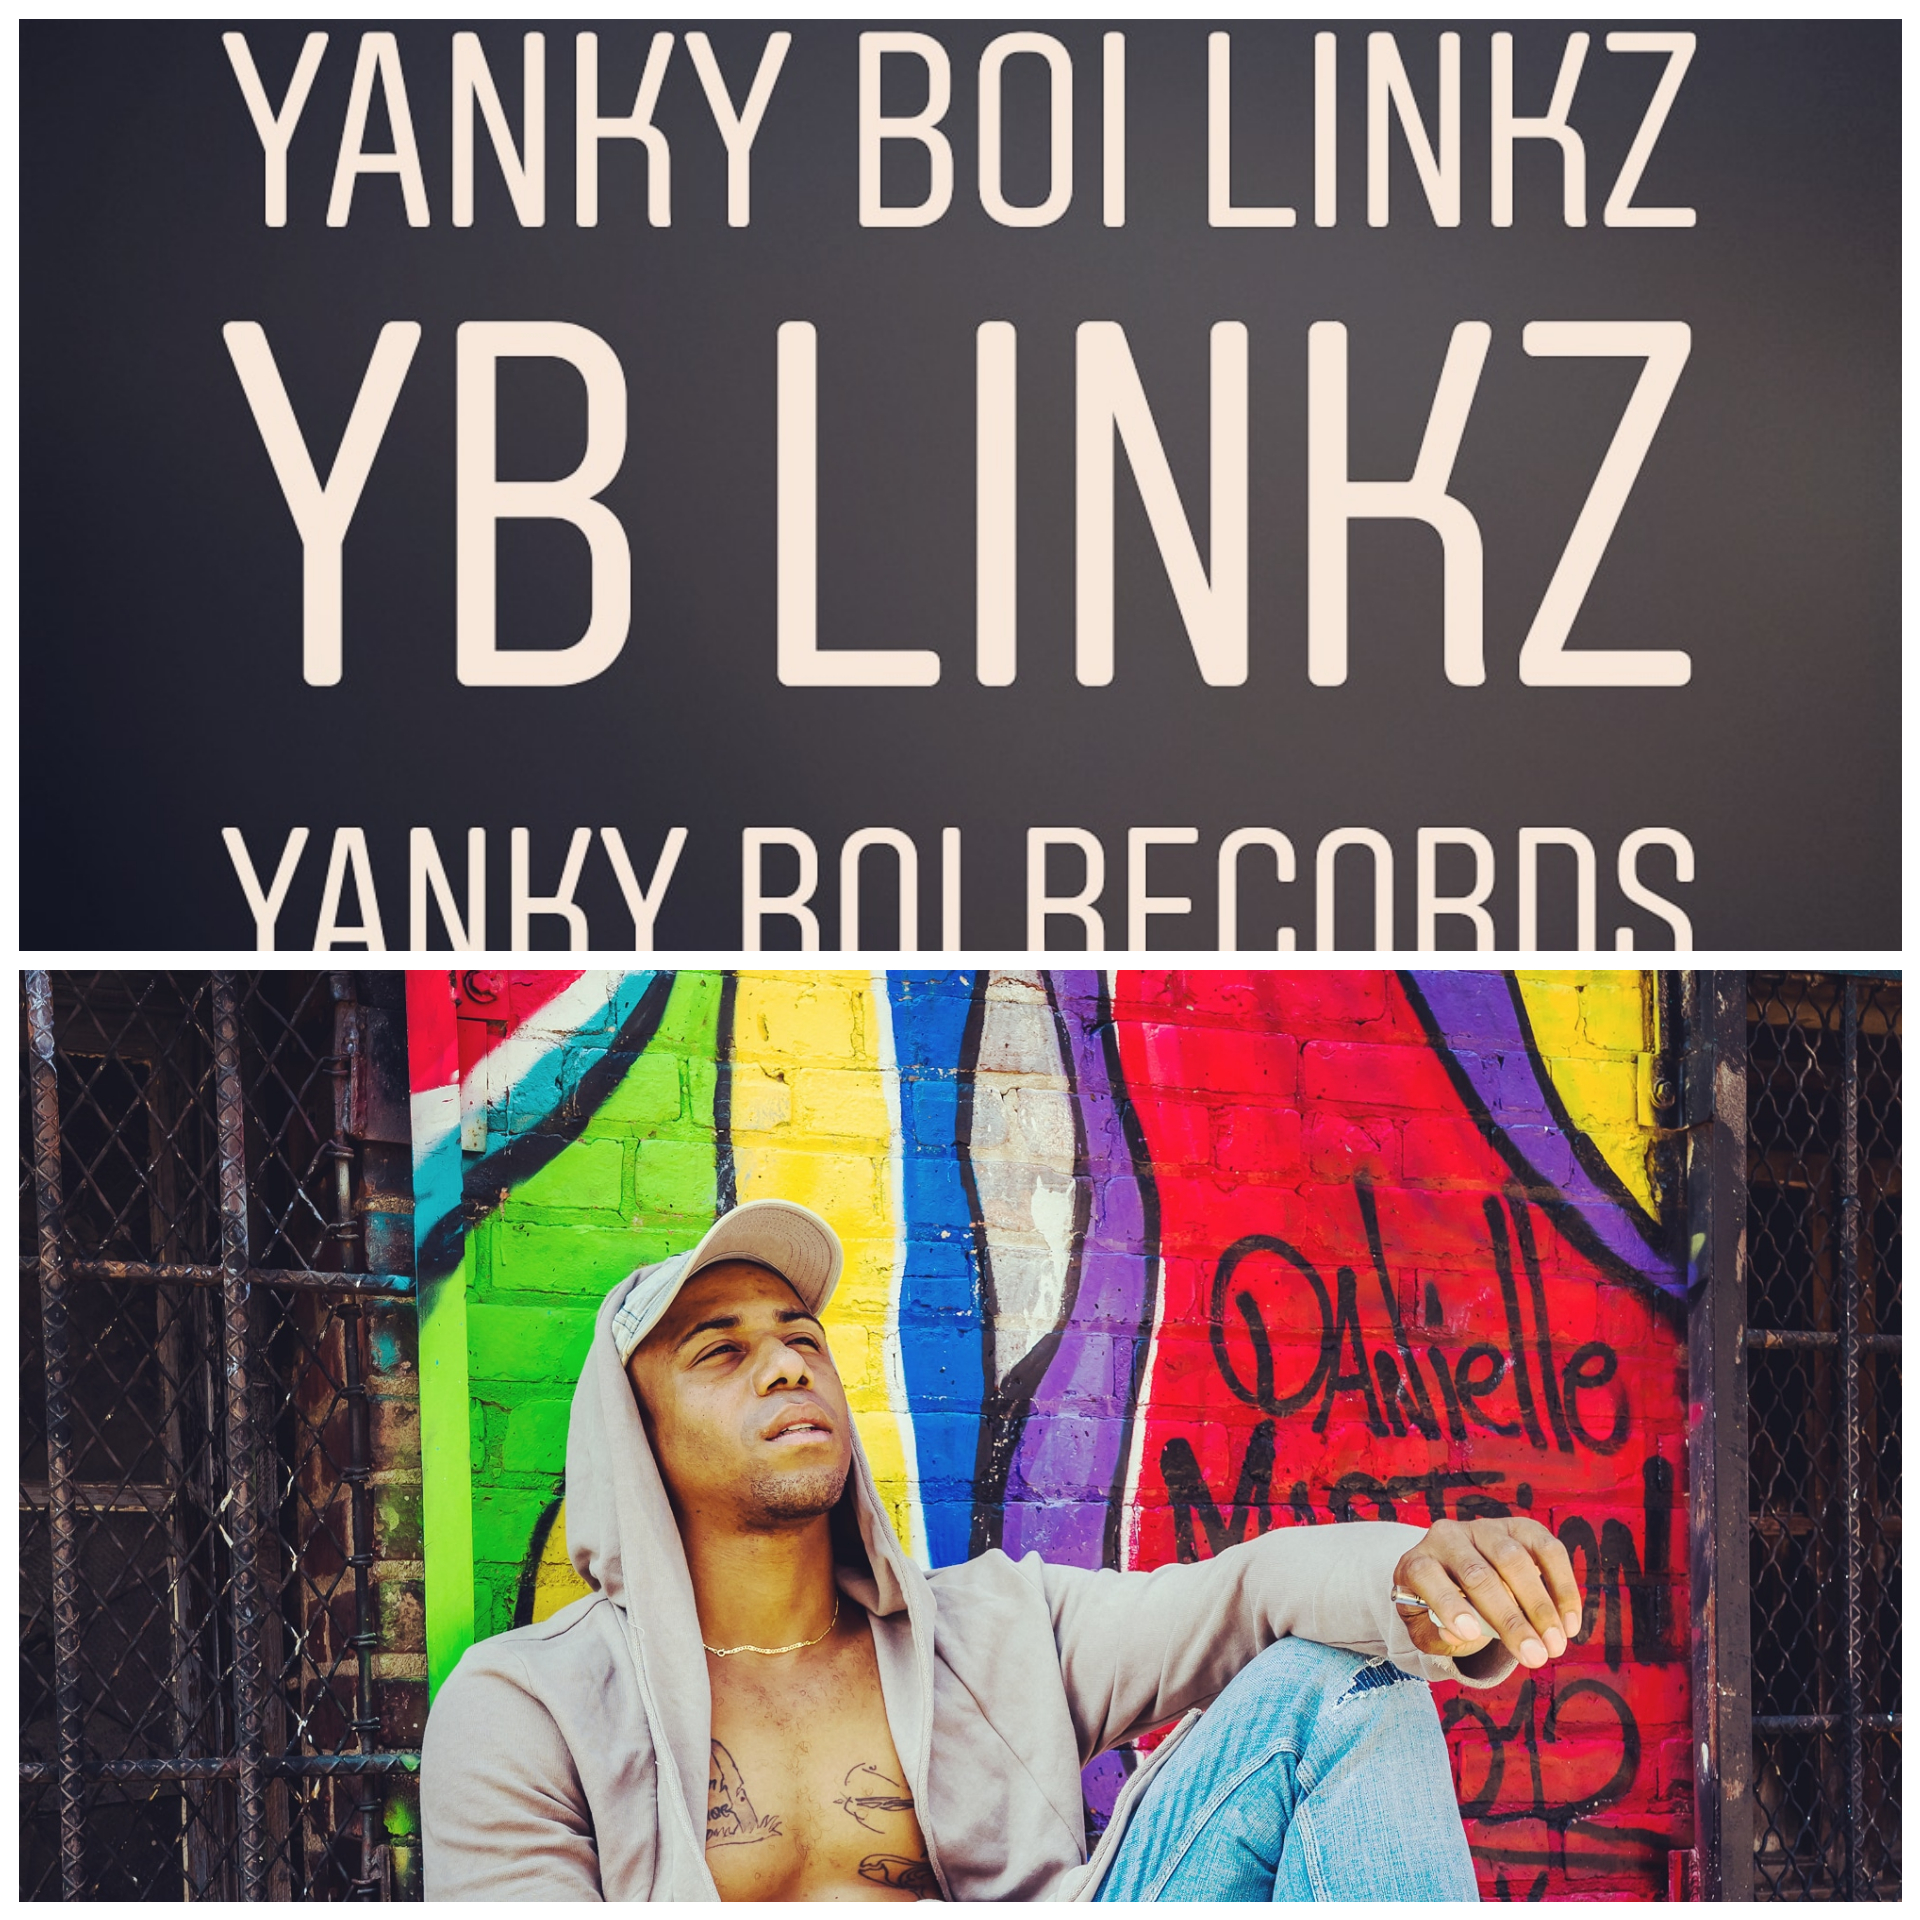 R & B Sensation YB Linkz Brings a Much-Needed New Flavor to the Hip Hop and R&B World